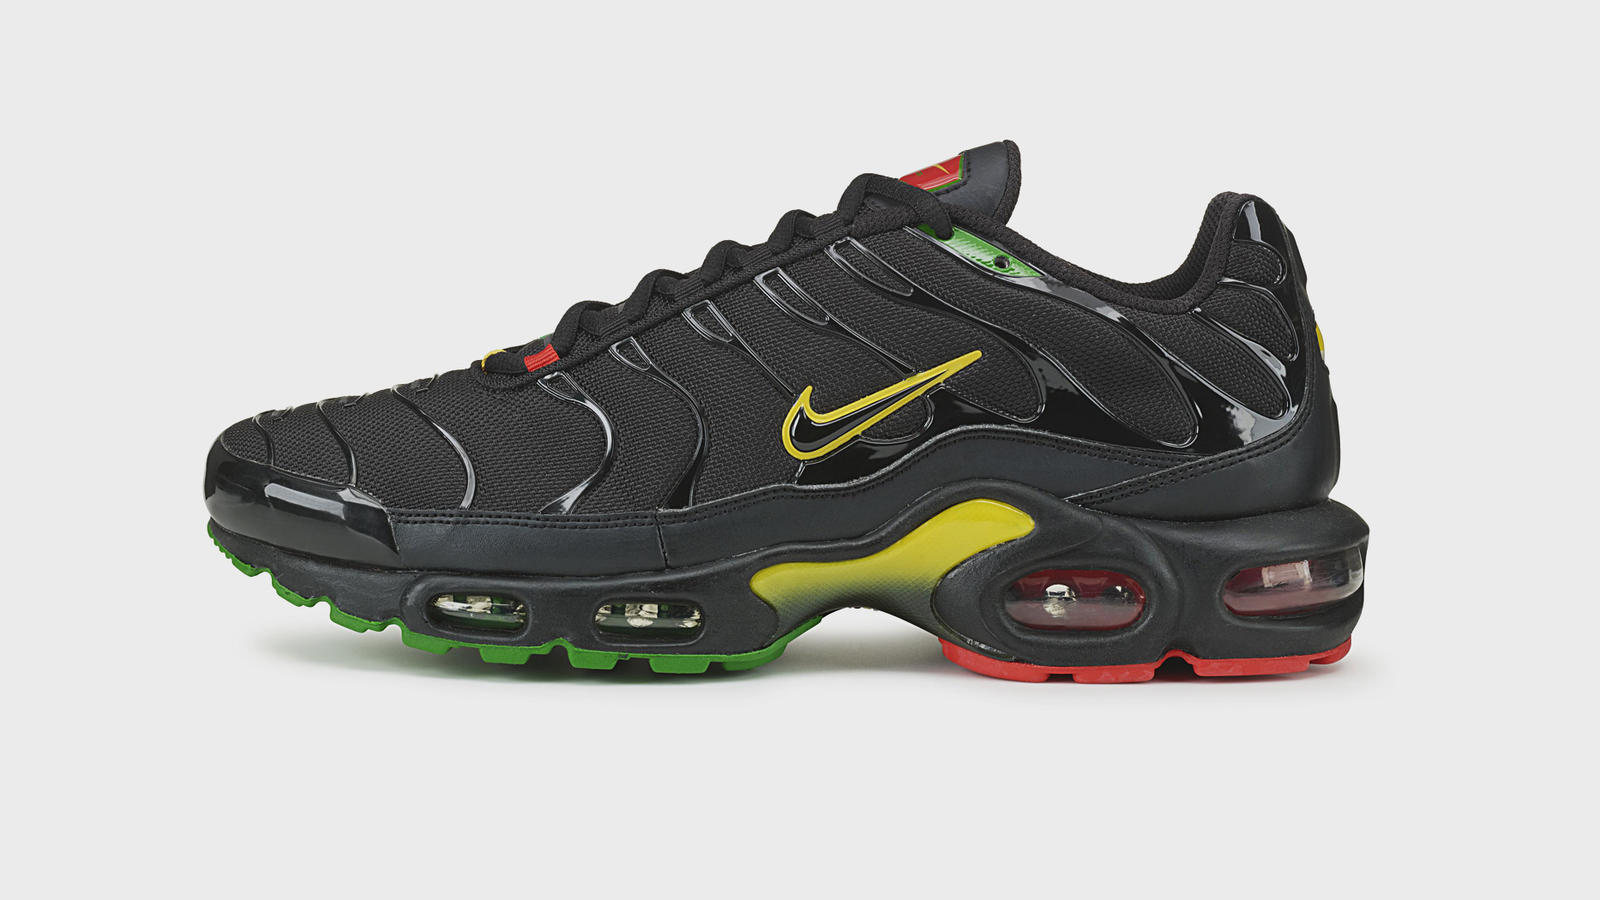 096caba354 The Untold Story of the Nike Air Max Plus 24